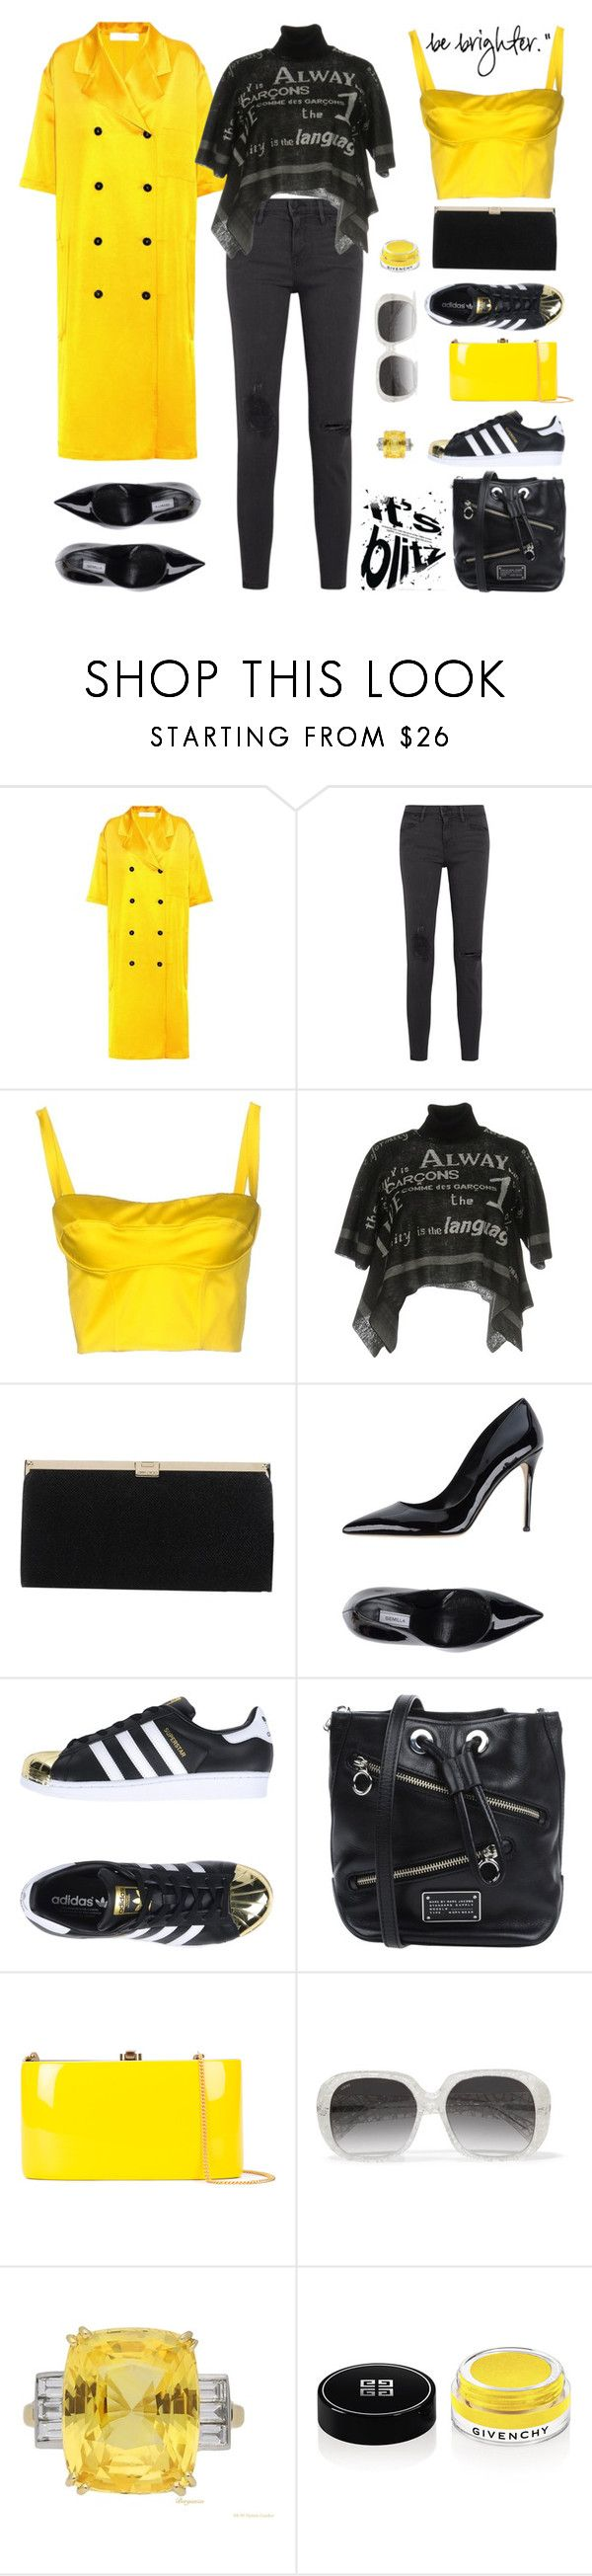 """Stand Out Girl"" by sue-mes ❤ liked on Polyvore featuring Victoria Beckham, Frame, Simona Corsellini, Comme des Garçons, Jimmy Choo, Semilla, adidas Originals, Marc by Marc Jacobs, Rocio and Loewe"